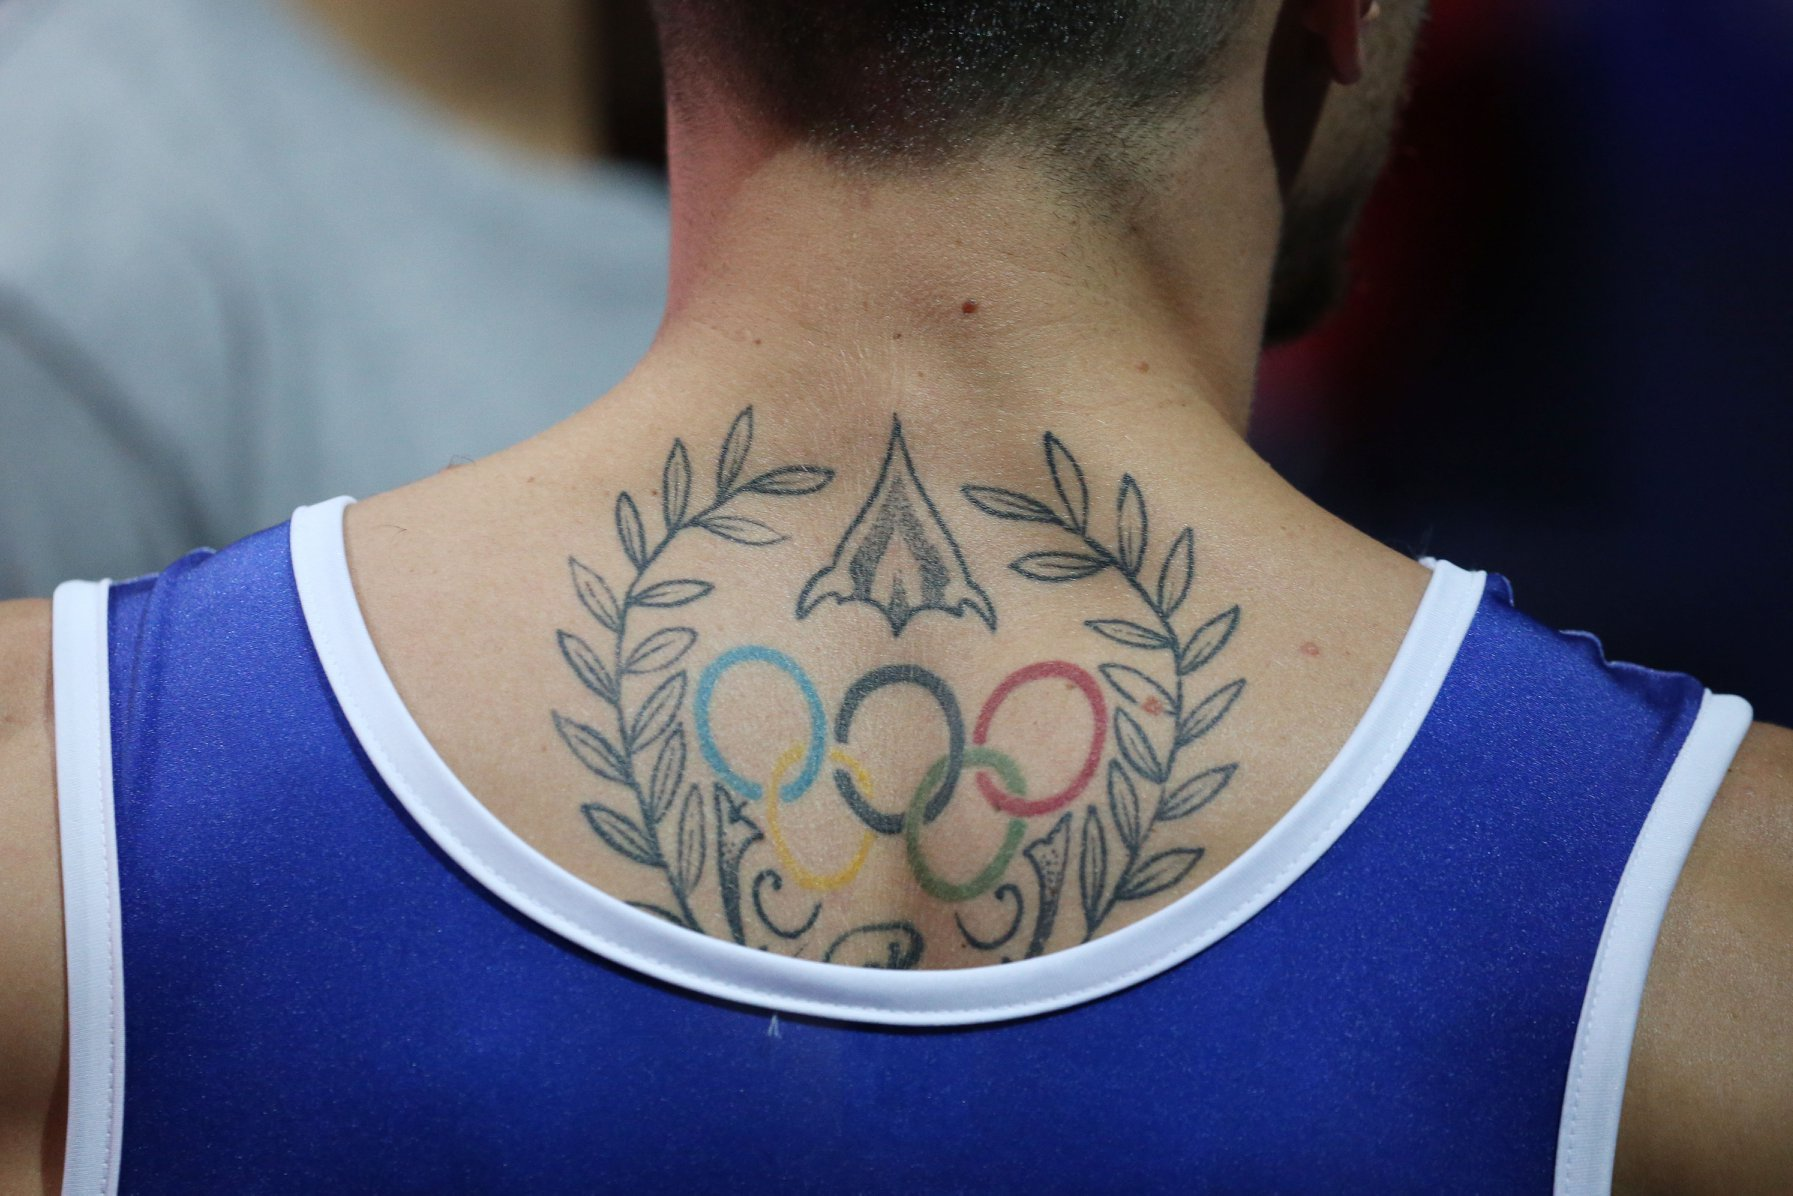 glasgow2018_petrounias-tattoo